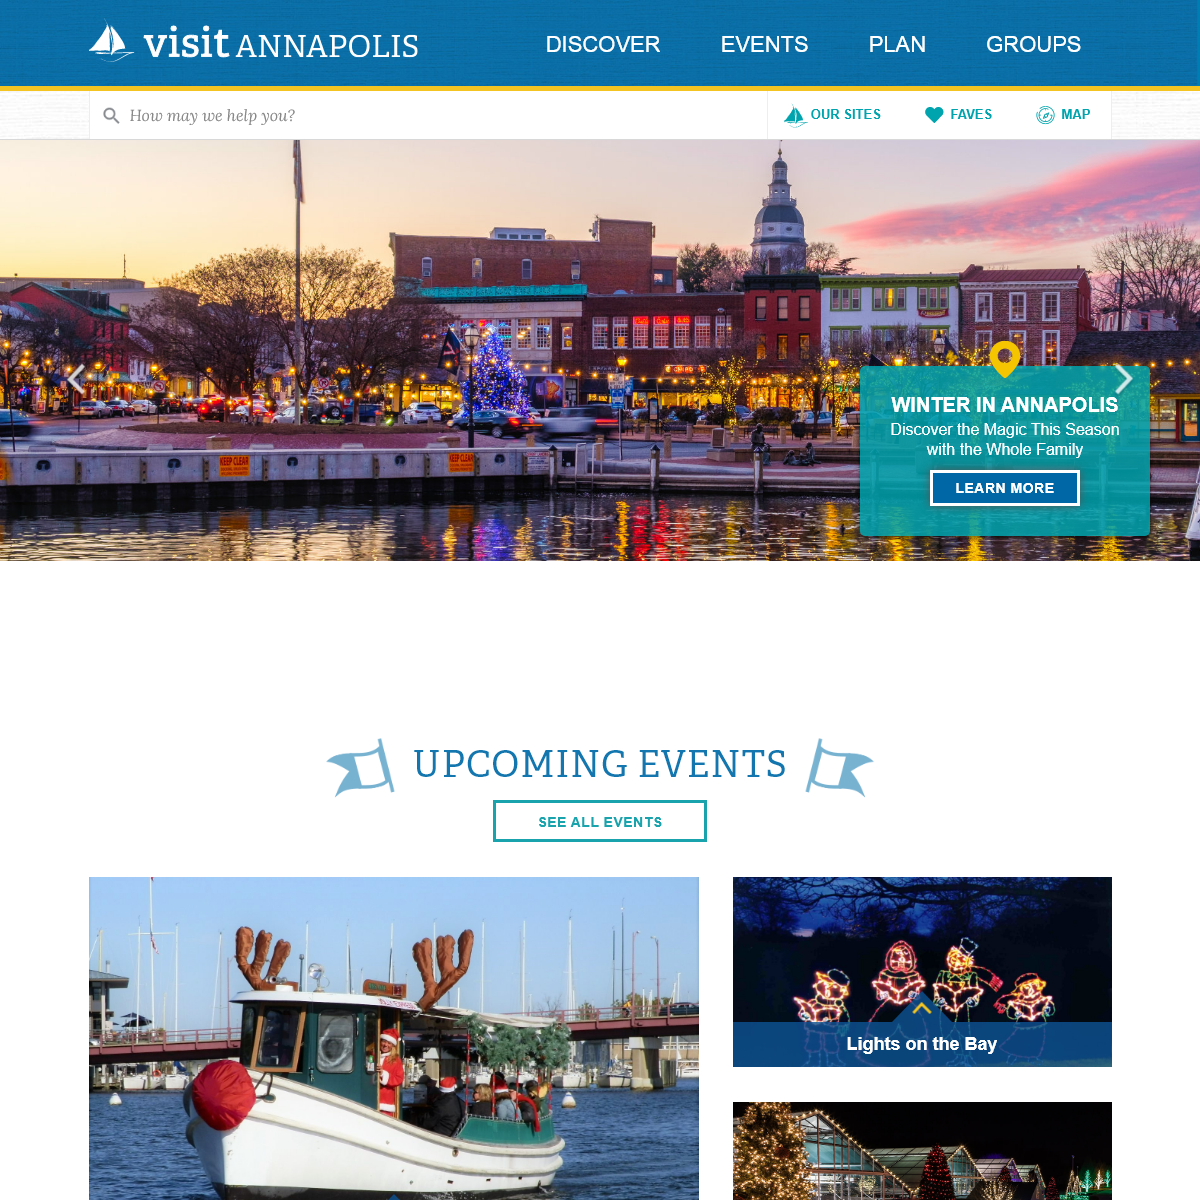 Visit Annapolis - Plan your trip to Annapolis & the Chesapeake Bay